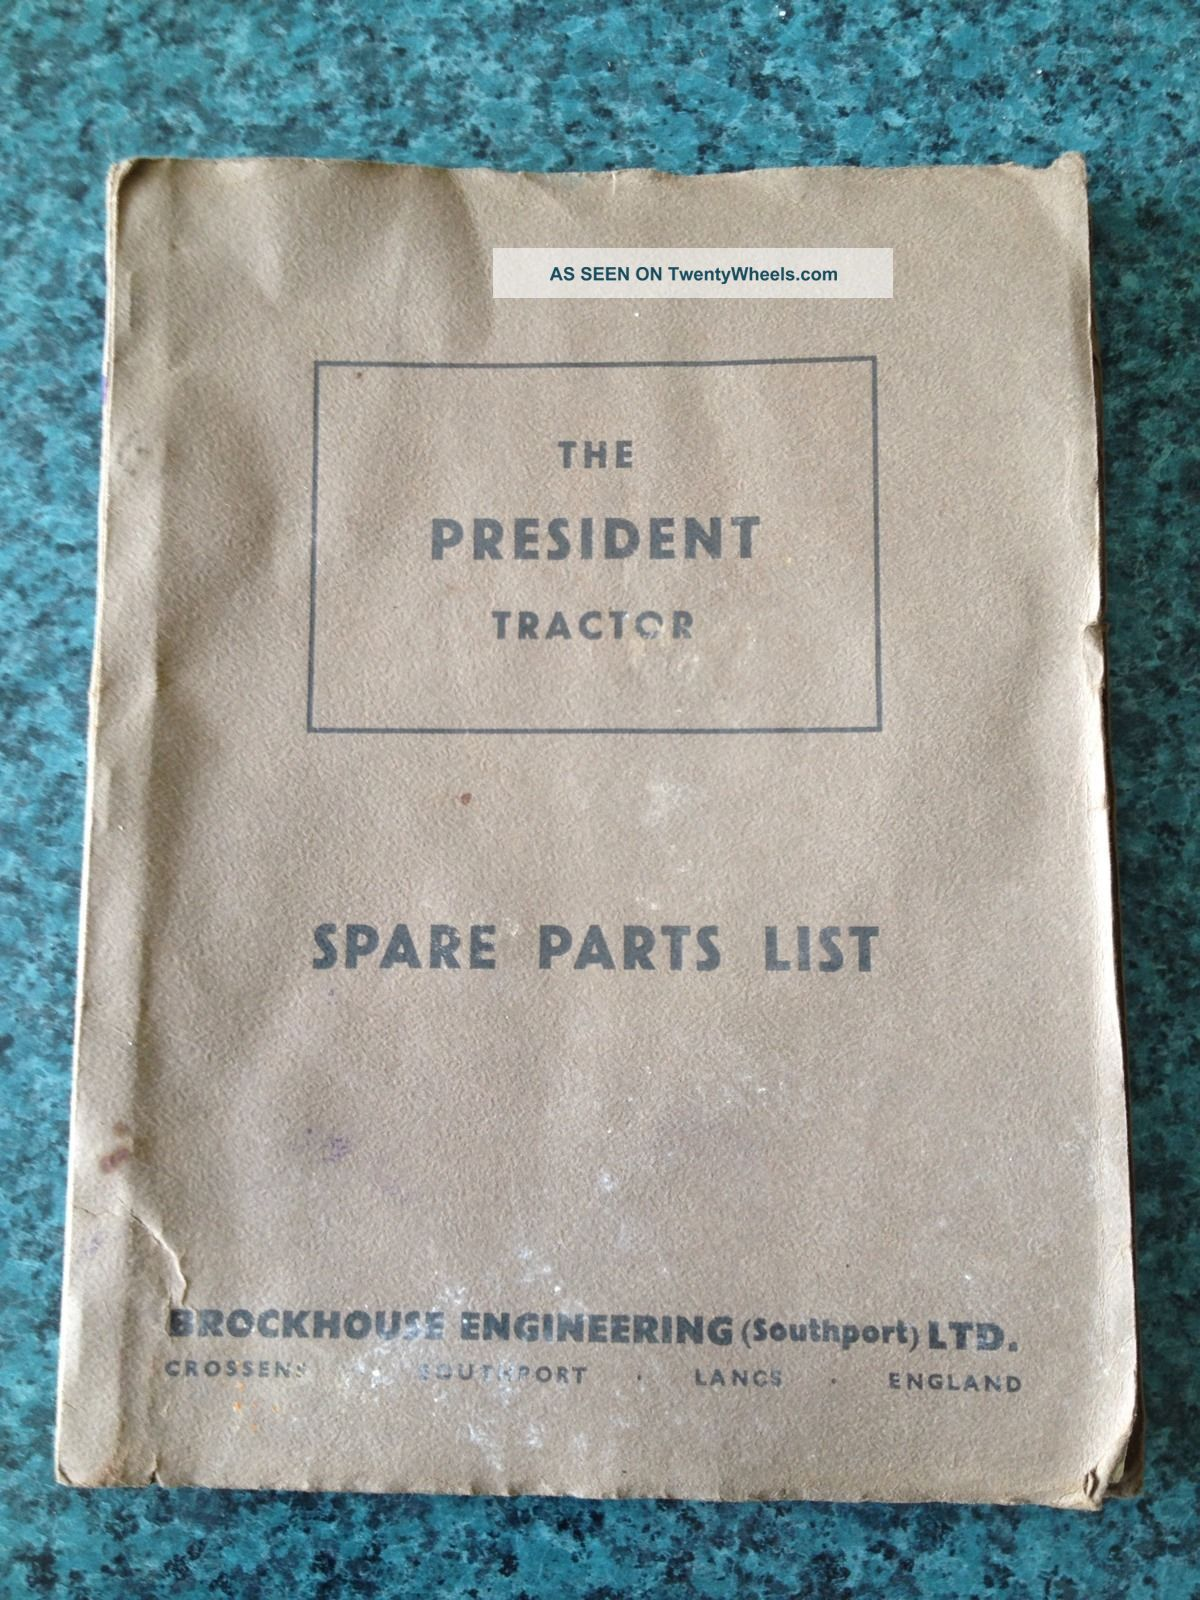 1952 President Tractor Spare Parts List - Brockhouse Eng.  England Uncategorized photo